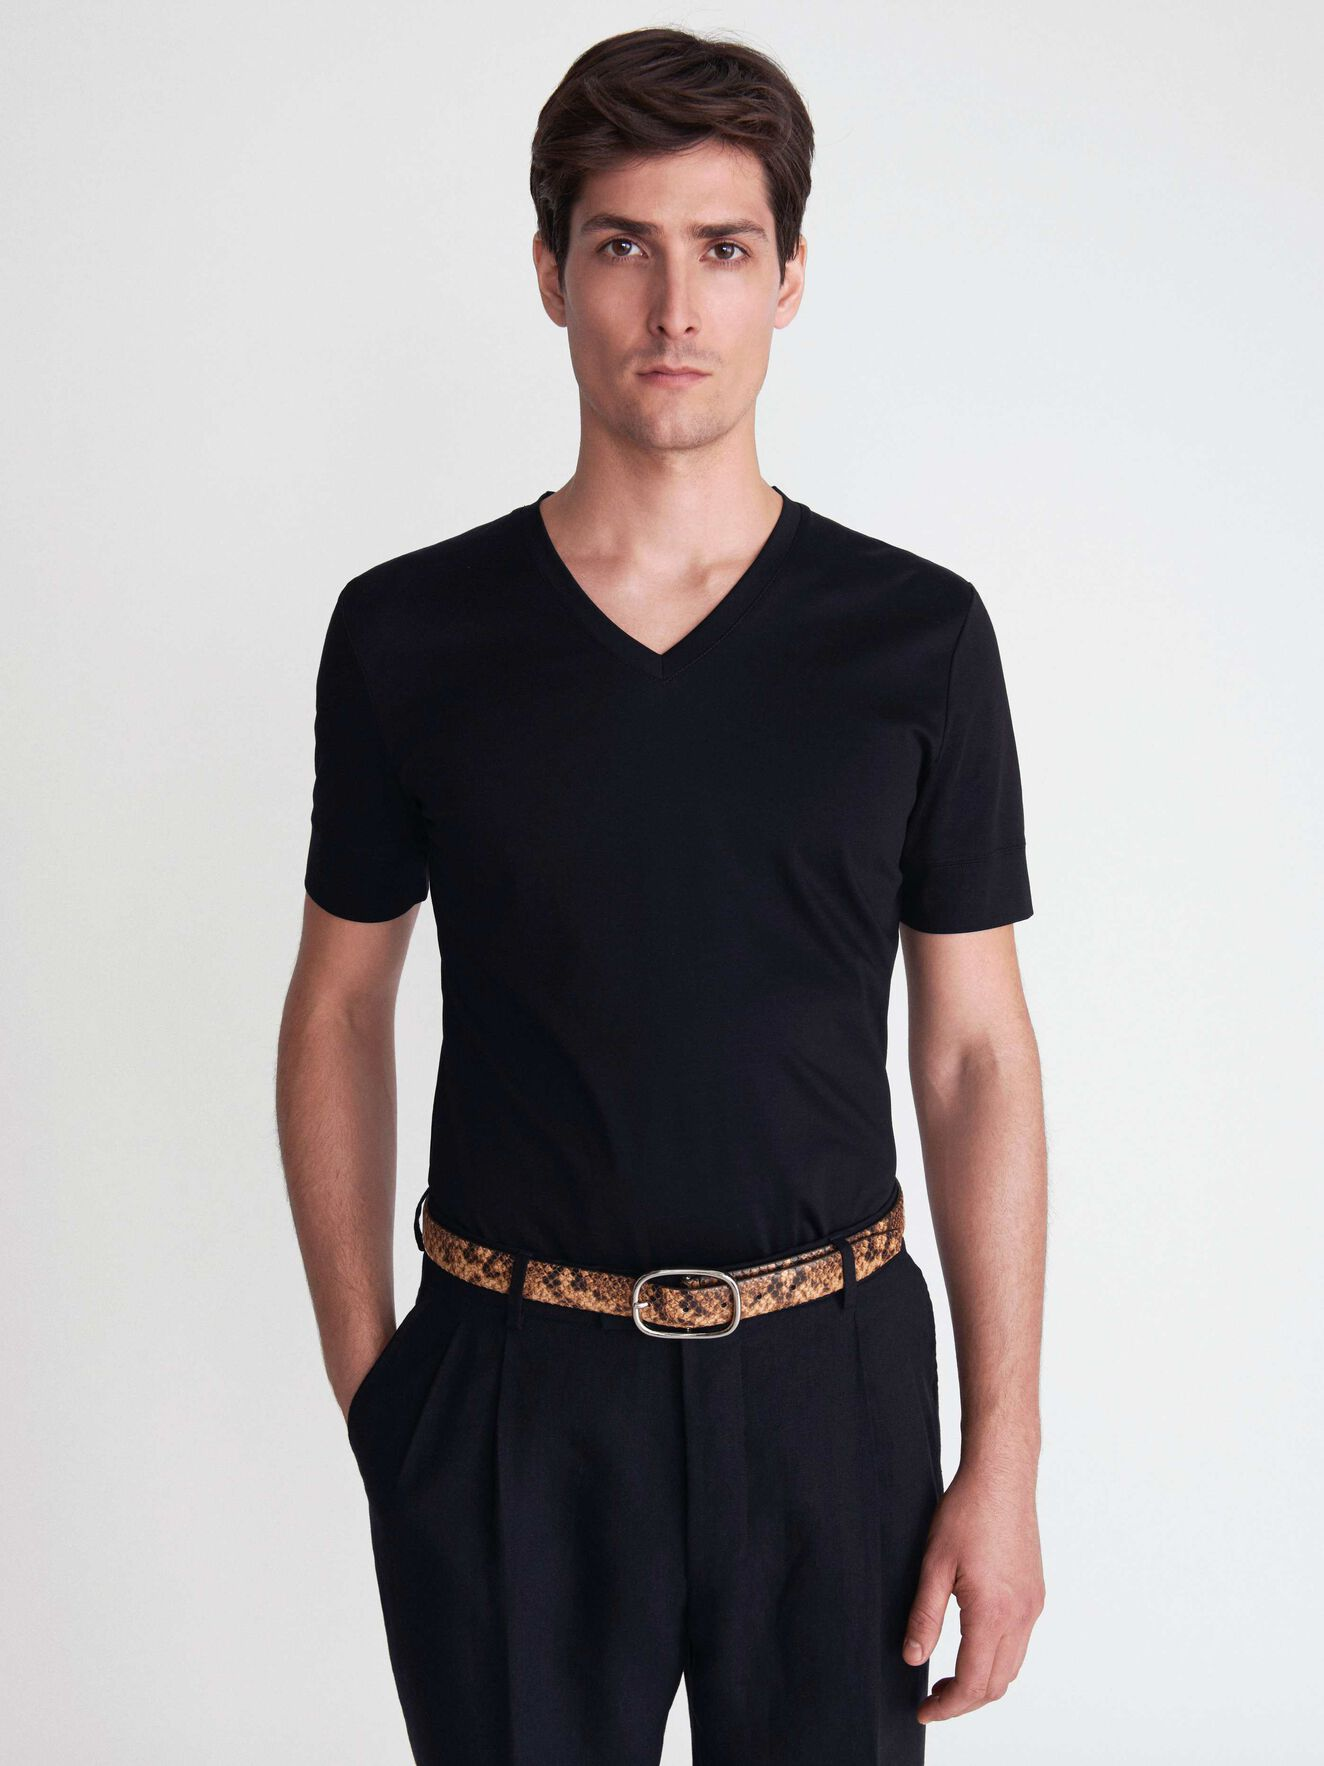 Diyon T-Shirt in Black from Tiger of Sweden